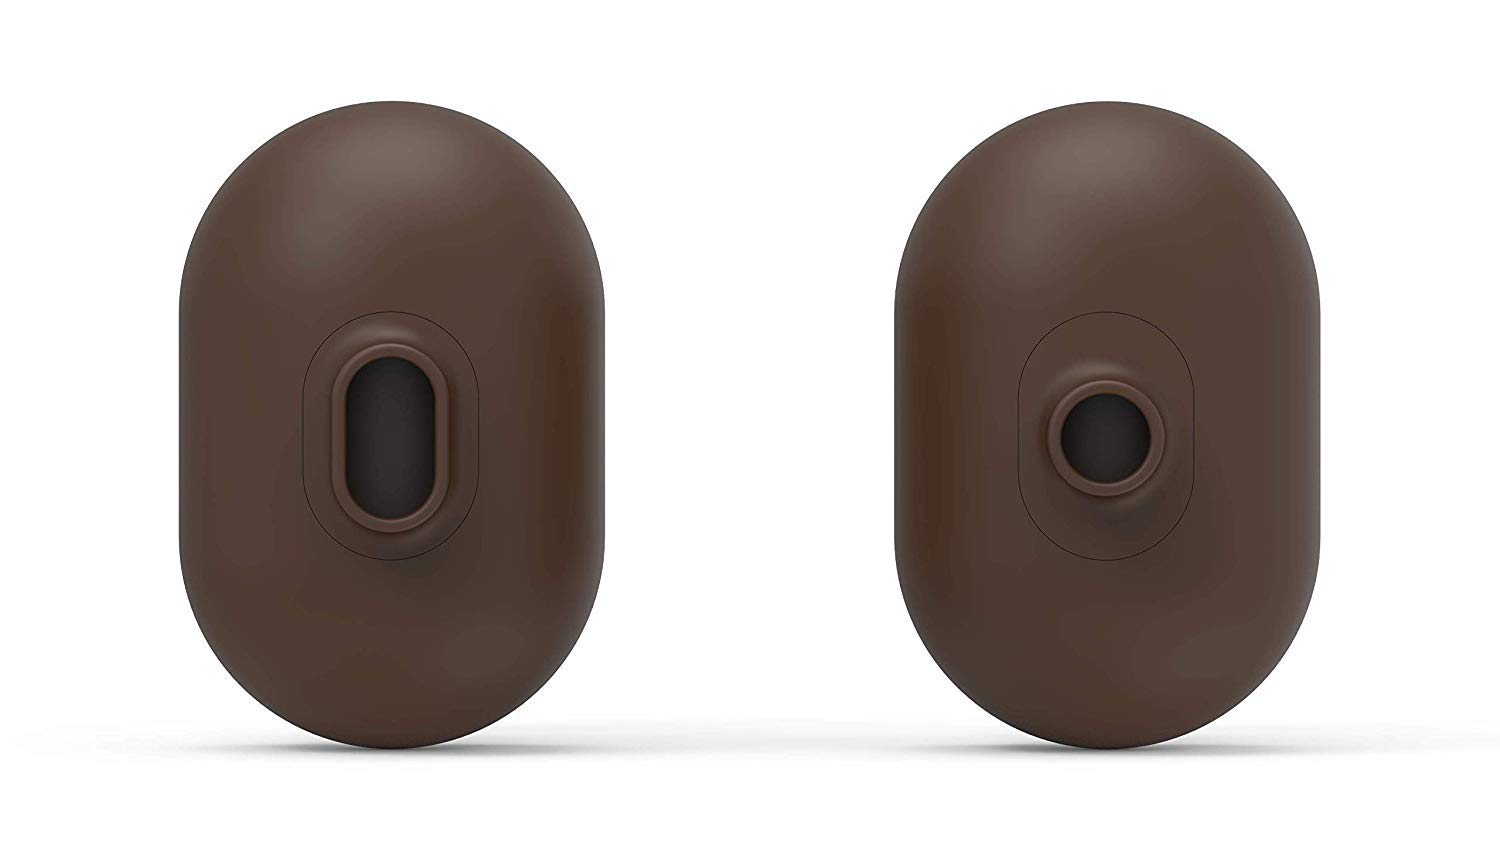 Extra Add-on Motion Sensor for RingPoint Driveway Alert, Outdoor Brown